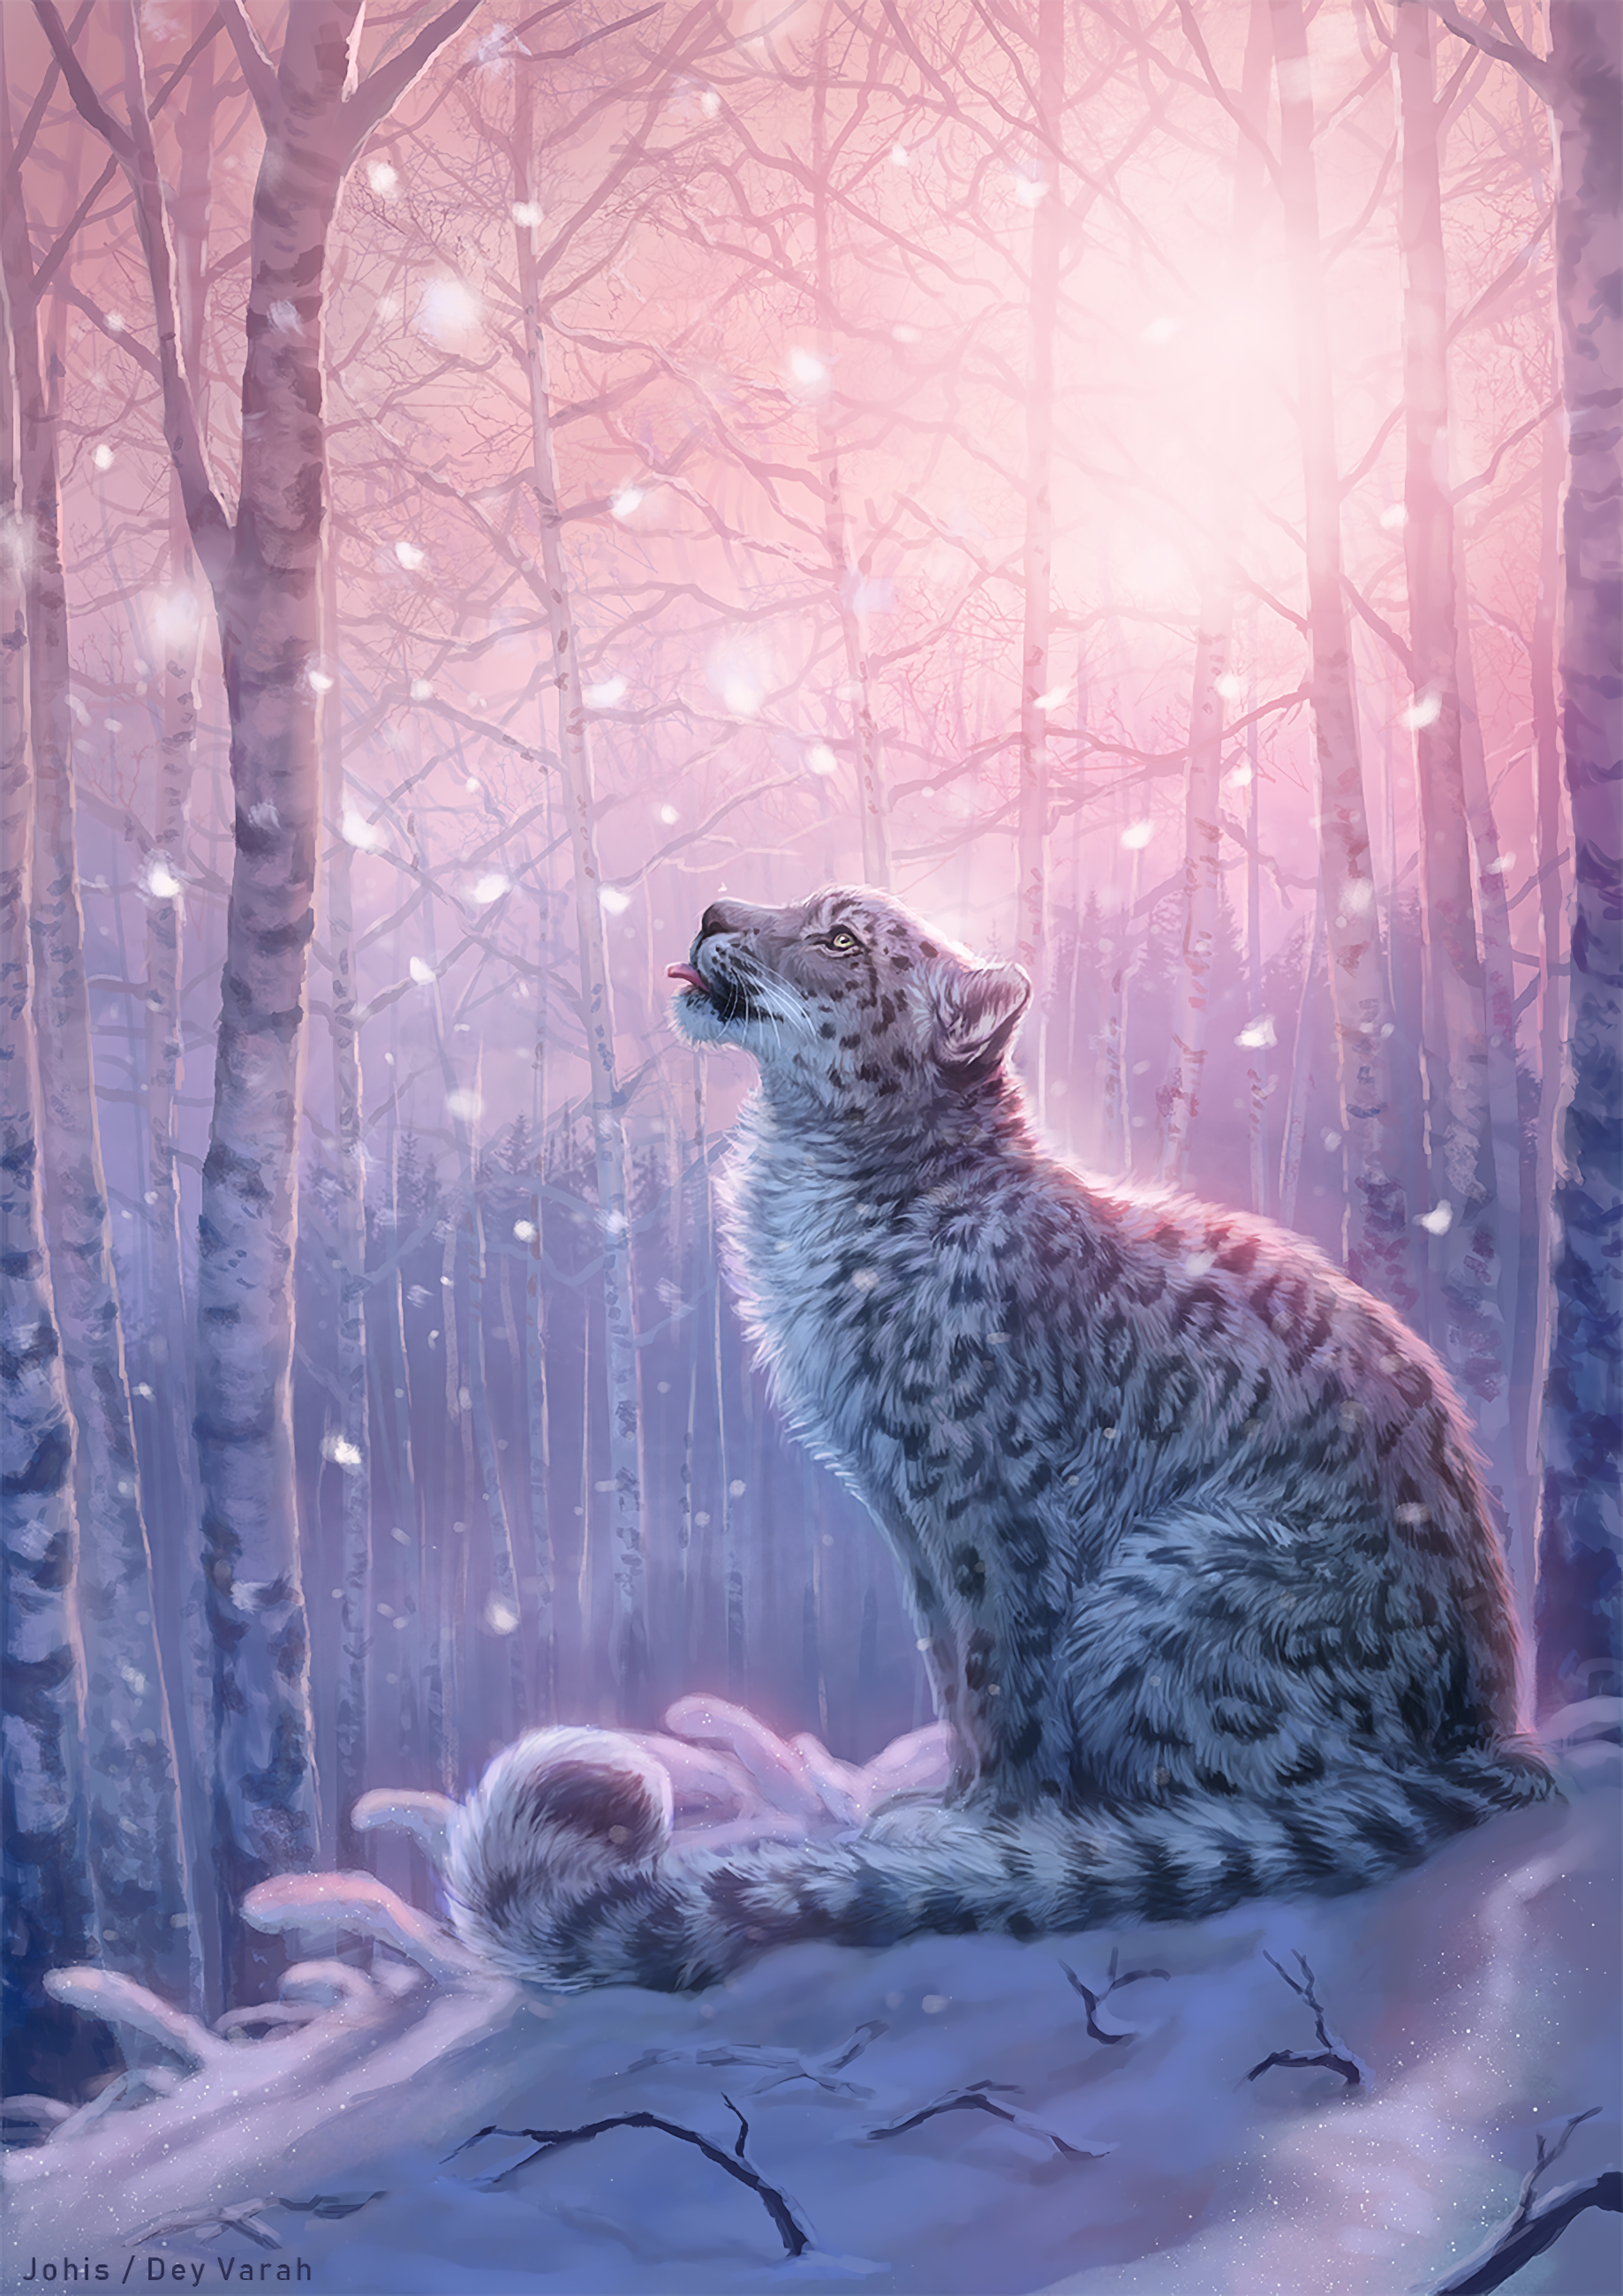 Best Snow Leopard wallpapers for phone screen